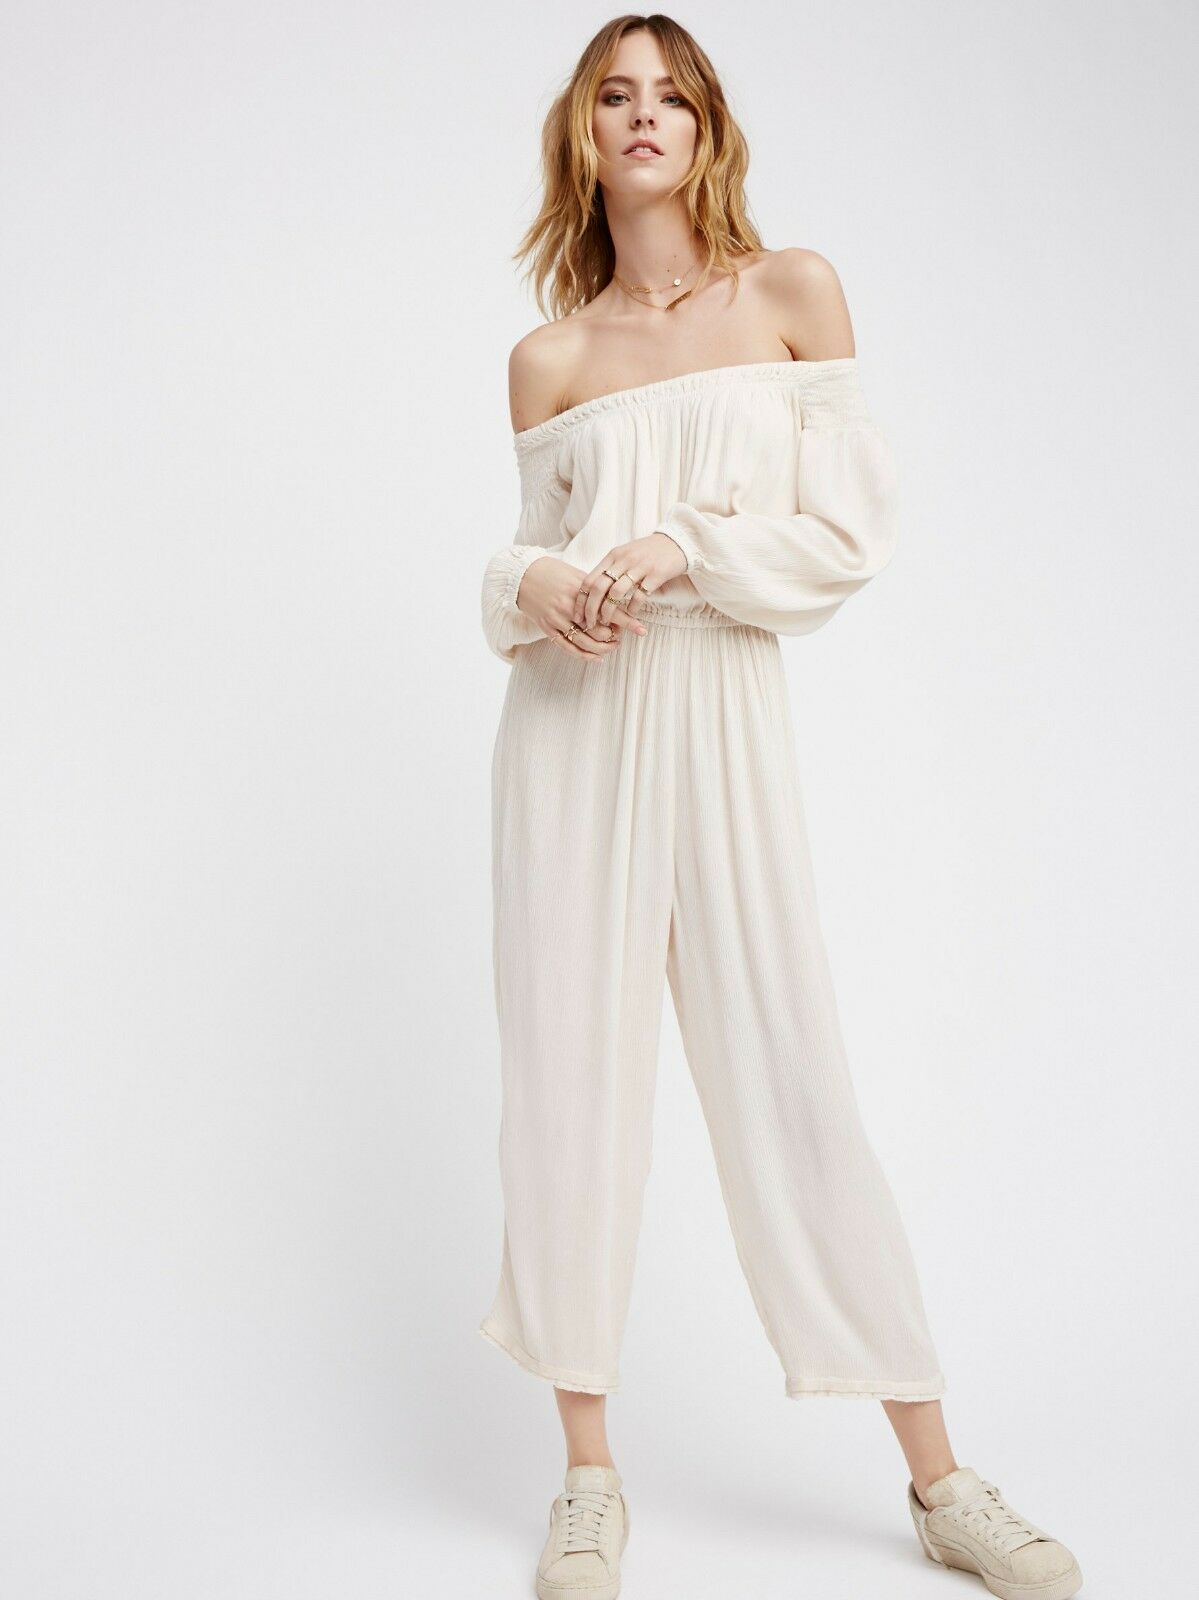 Free People Show Your Shoulder Romper   20865   Size M